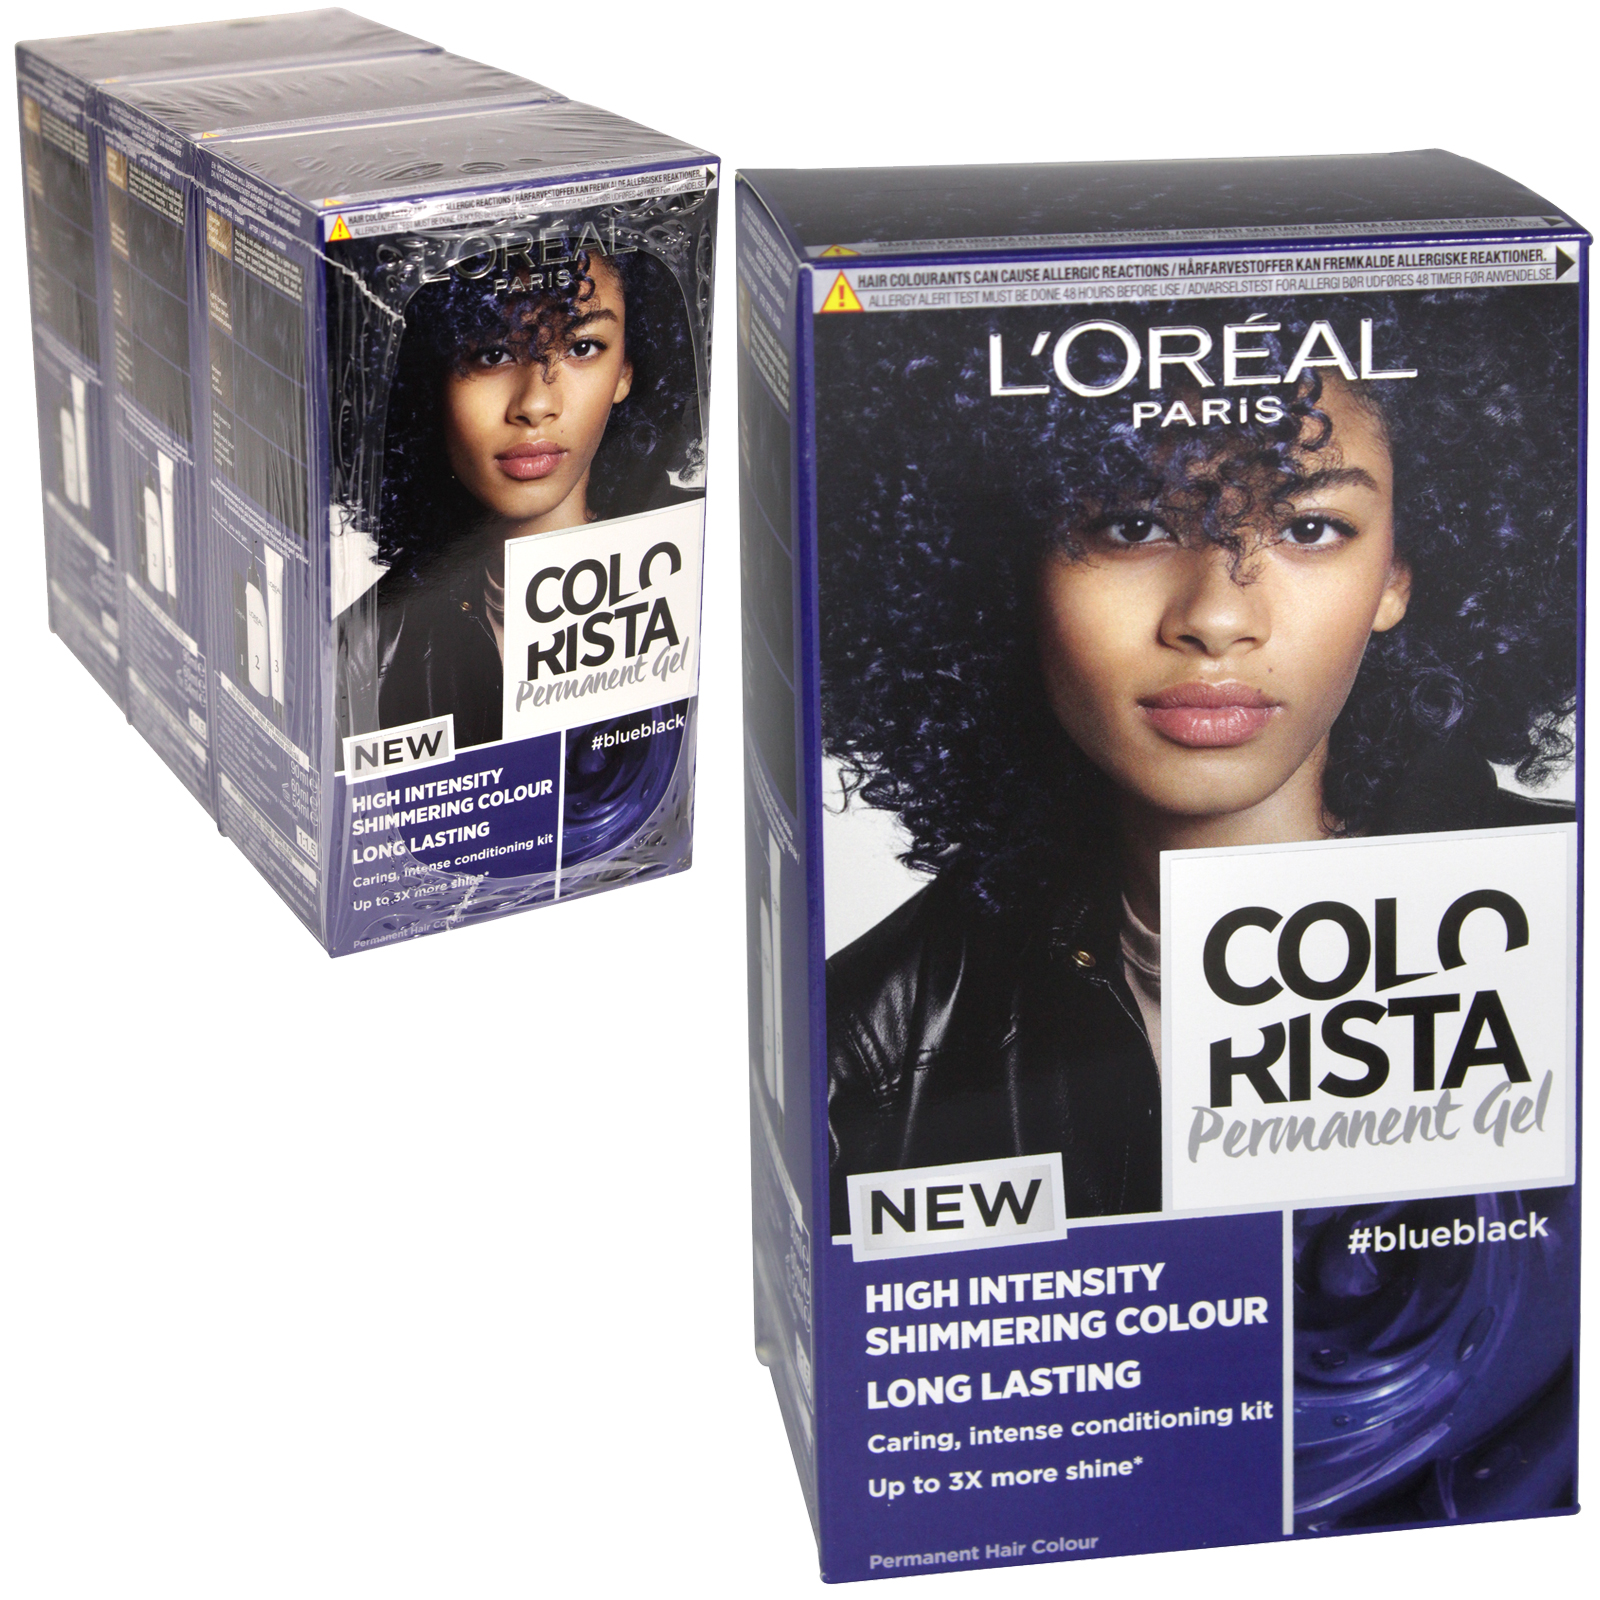 COLORISTA PERMANENT GEL BLUE BLACK 1.10 X3